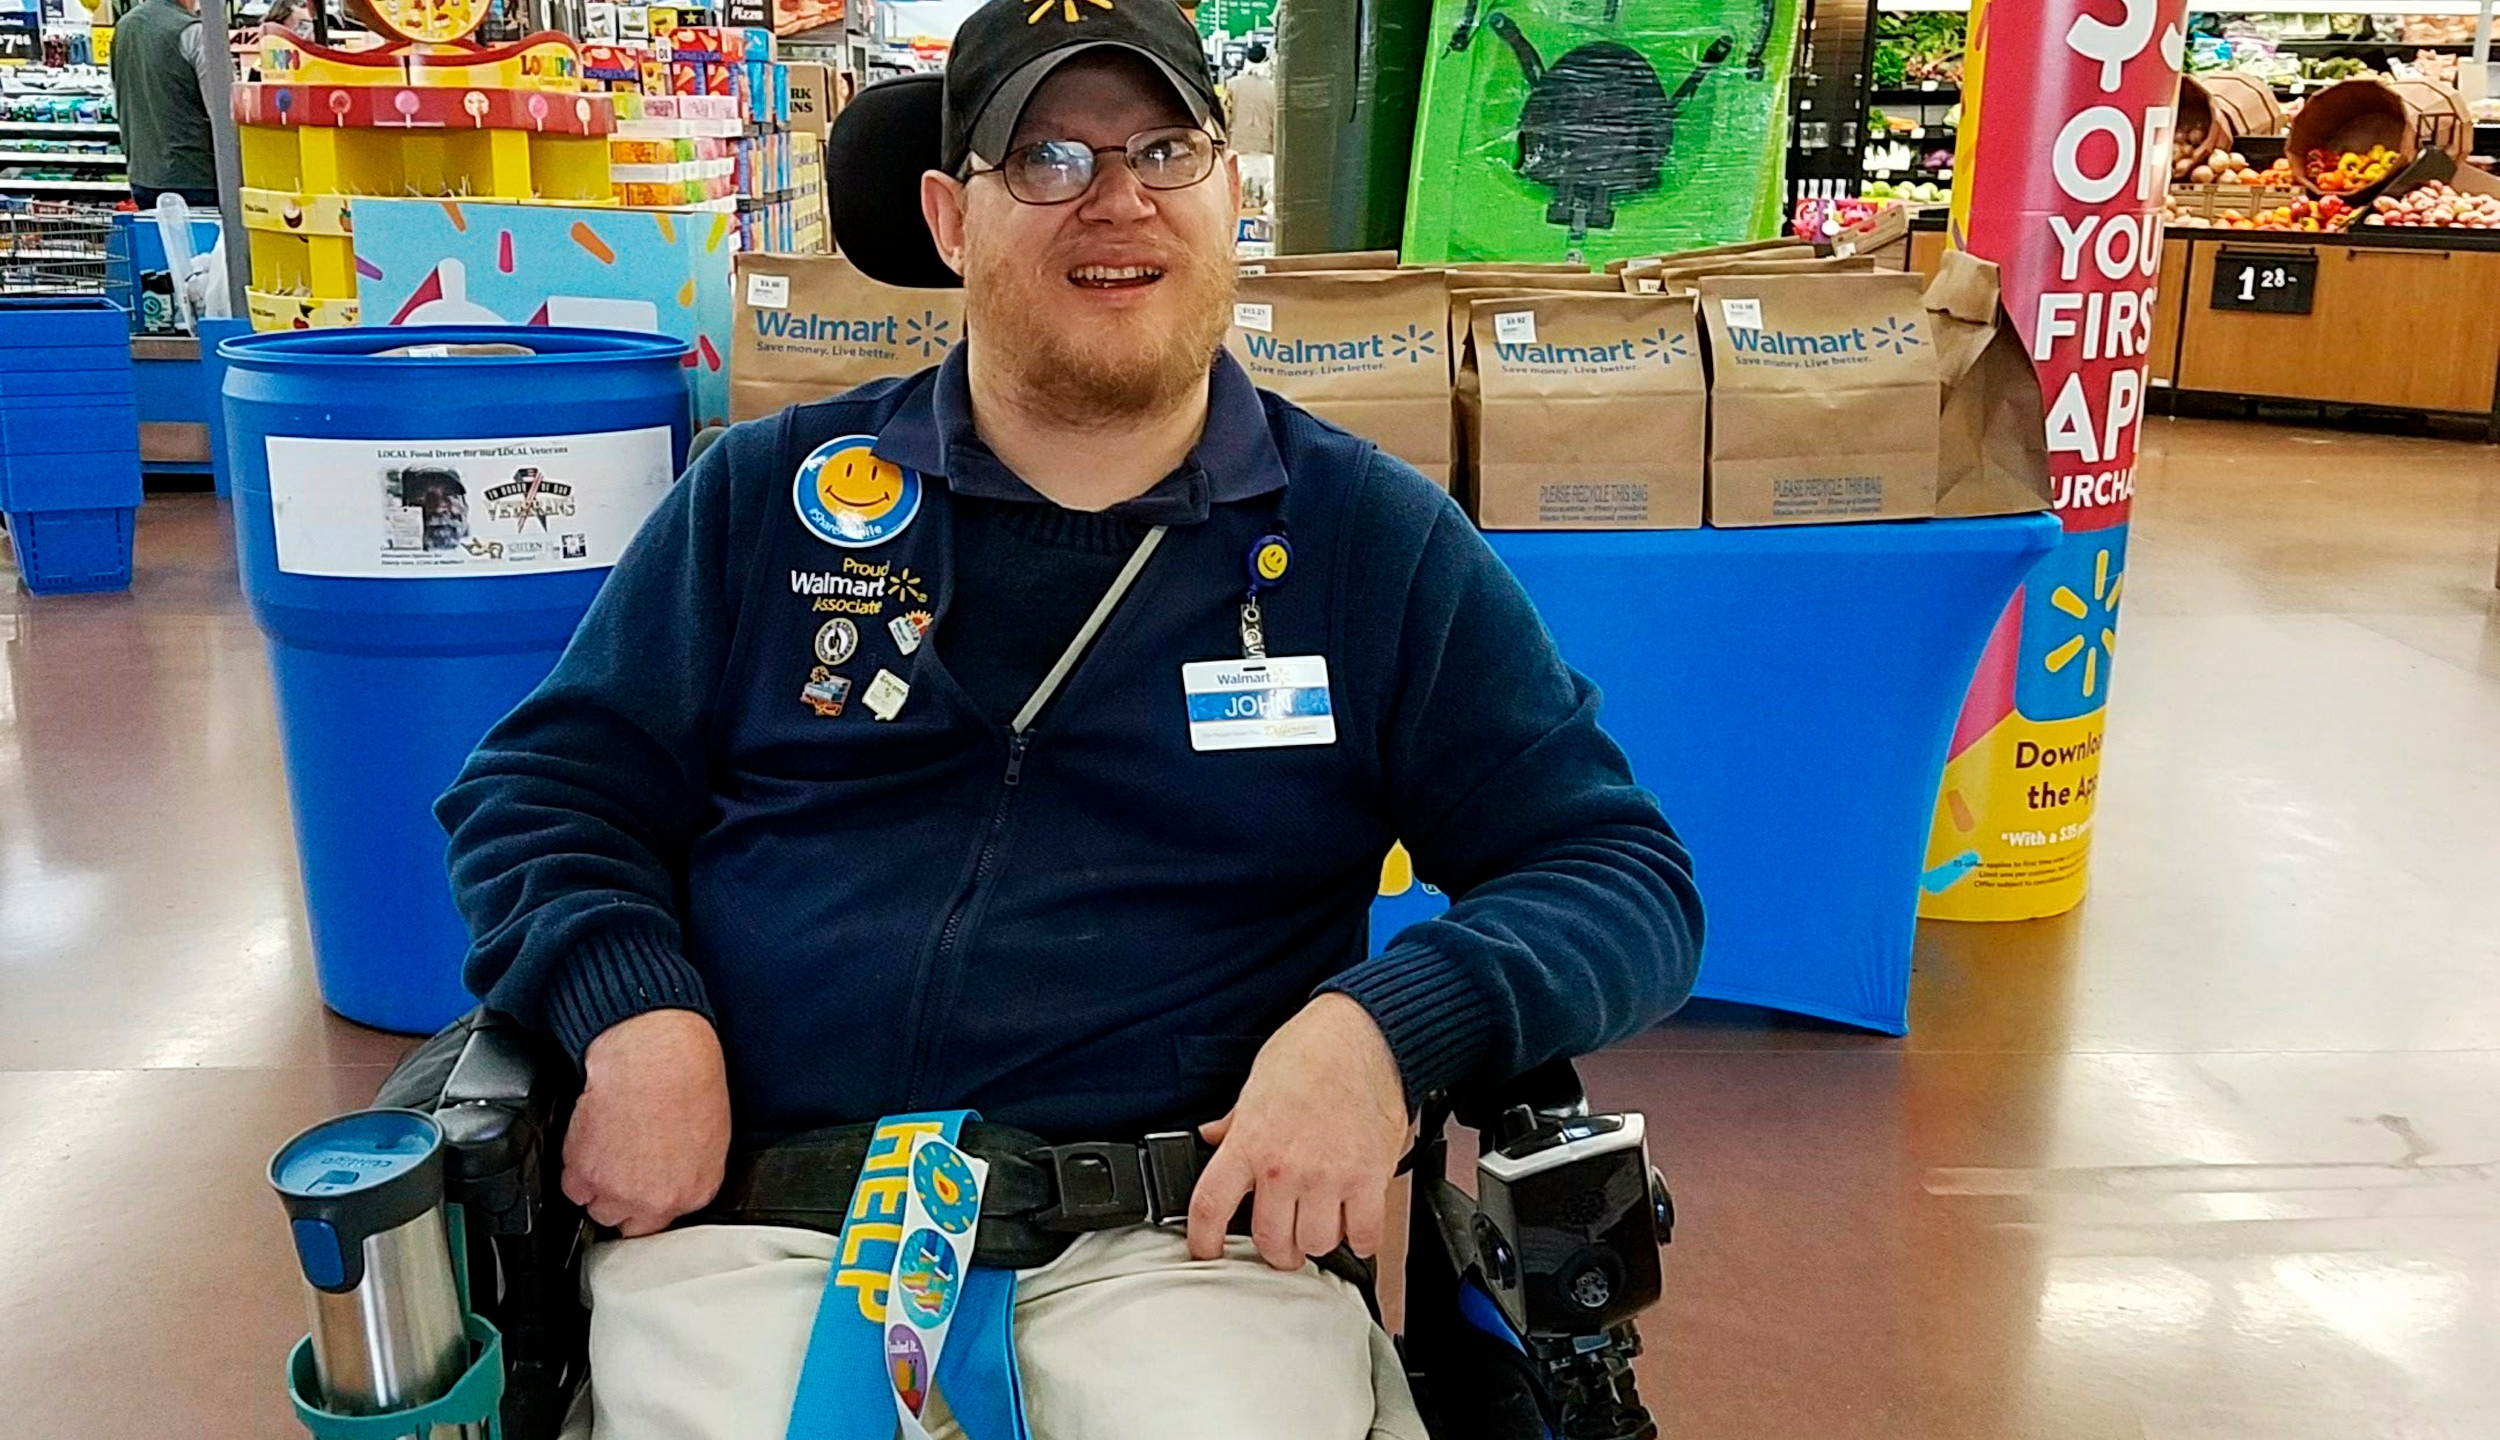 Walmart_Disabled_Greeters_28839-159532.jpg61129902